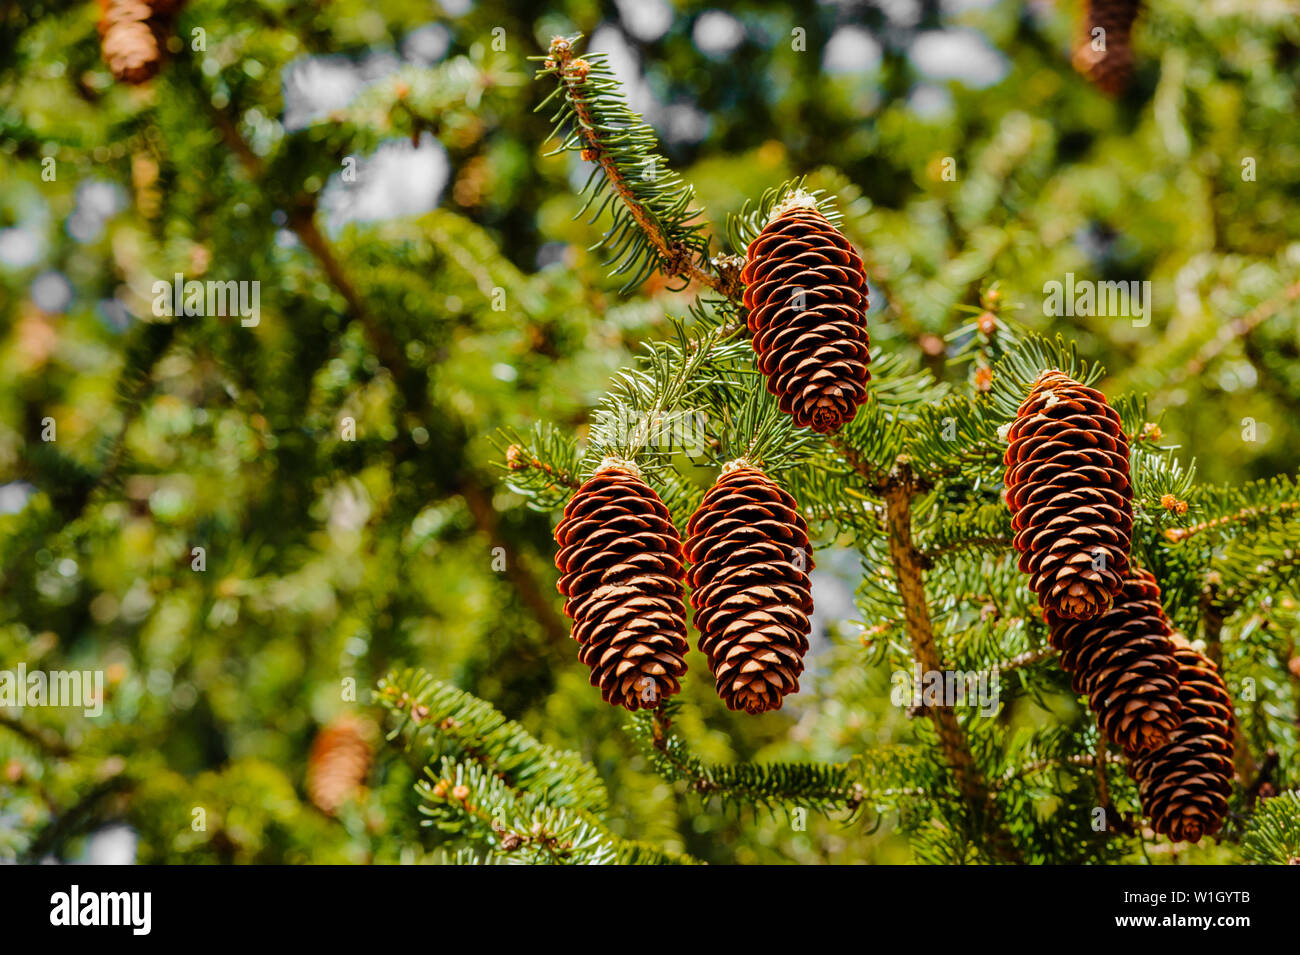 Cluster of conifer cones hanging off tree branch. - Stock Image